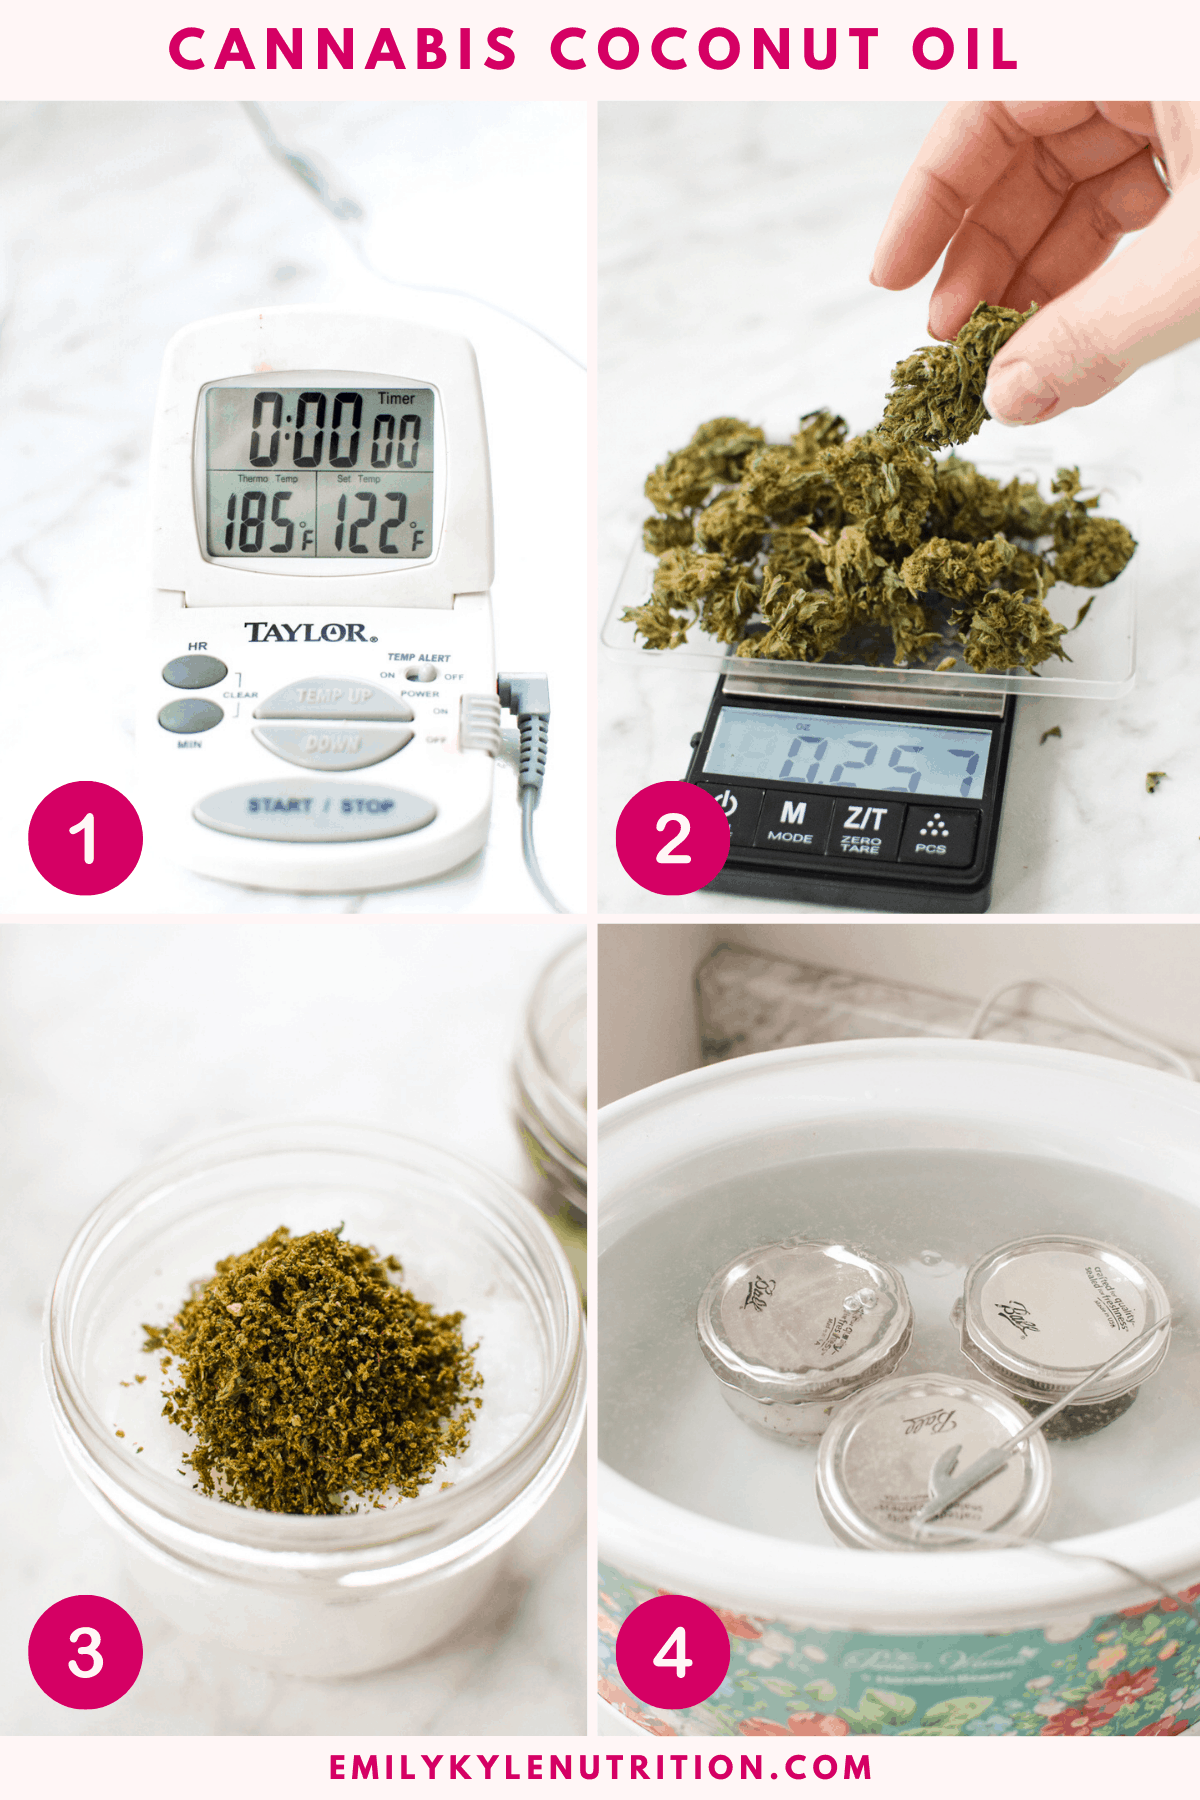 A collage image of four photos showing the first four steps of setting up the process including a thermometer at 185 degrees, measuring the flower with a scale, adding it to the coconut oil, and putting it in the water bath.